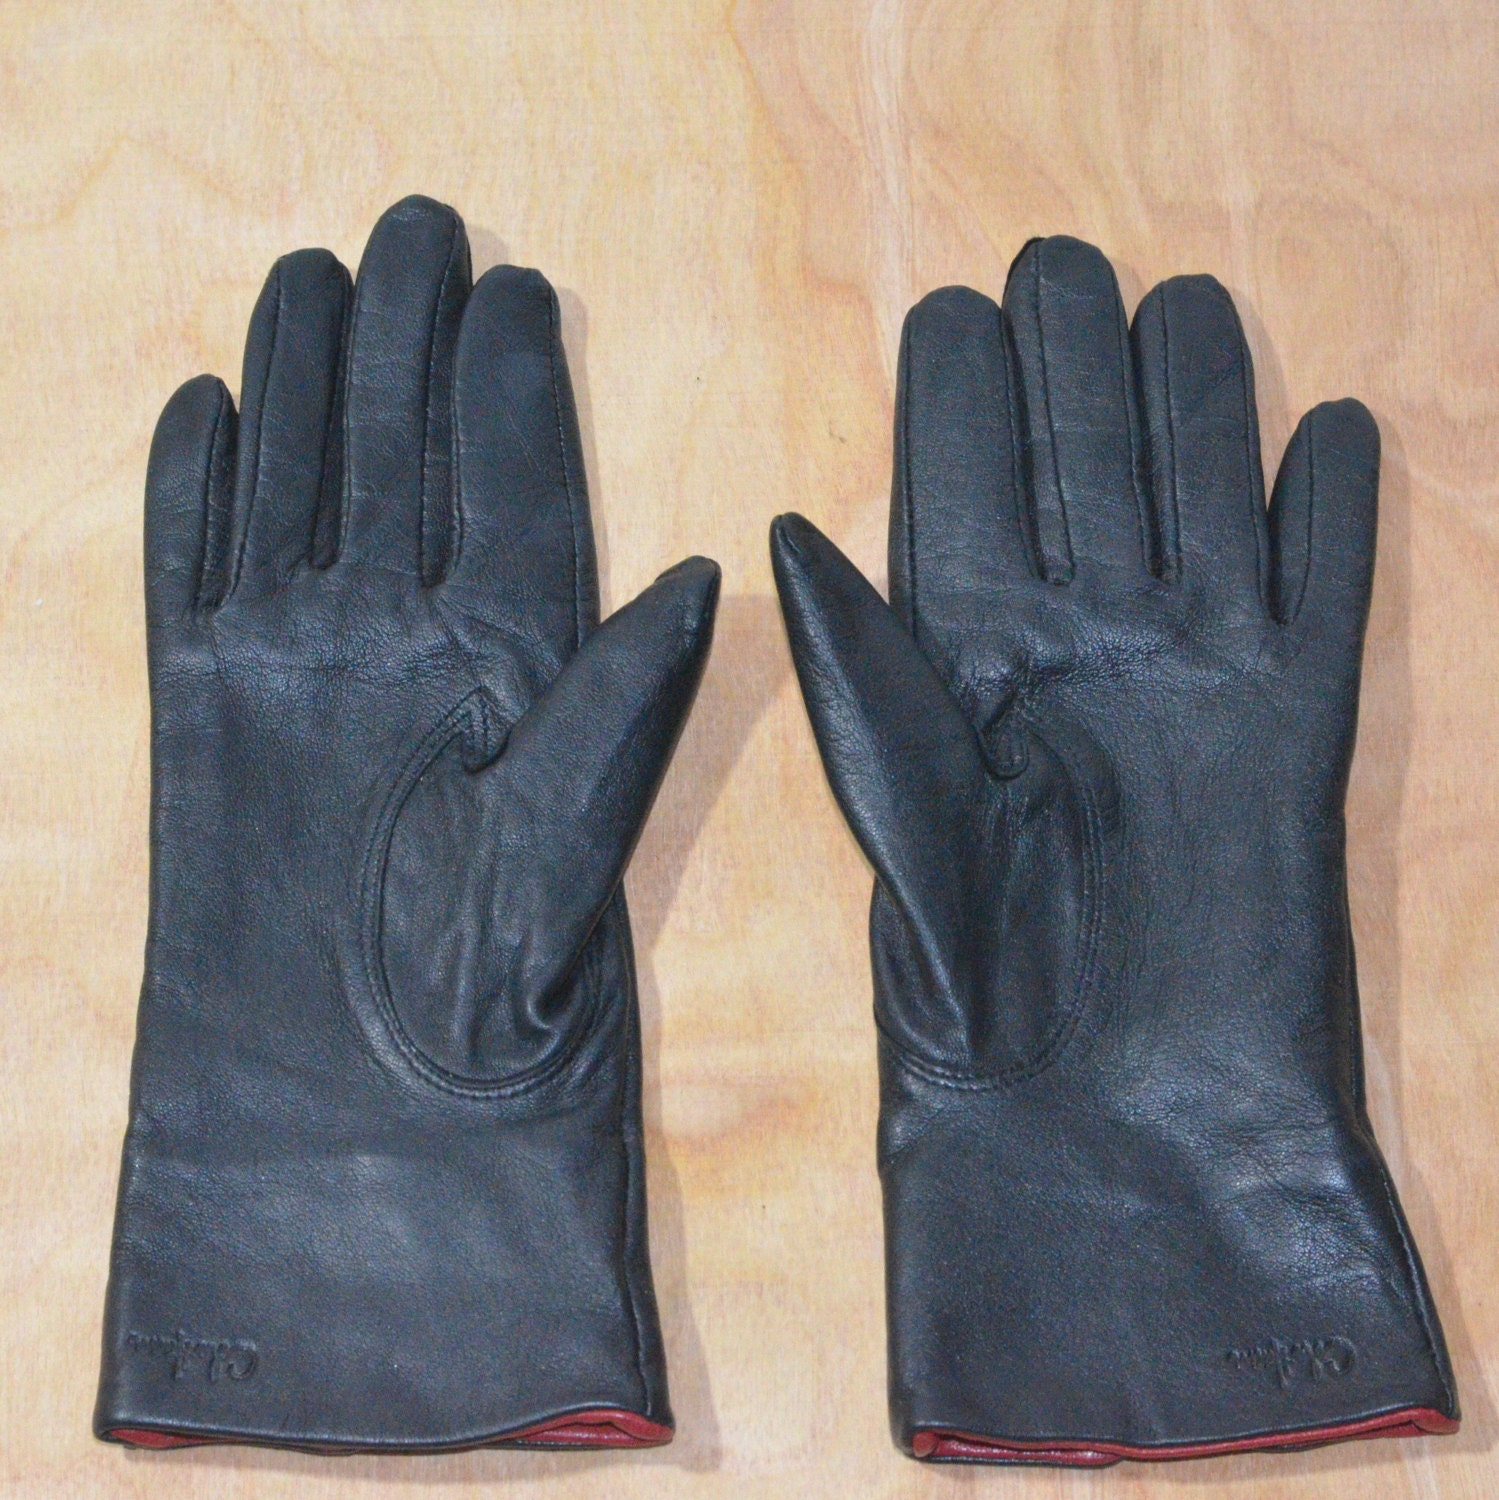 Cole haan black leather gloves - Cole Haan Black Leather Gloves 43